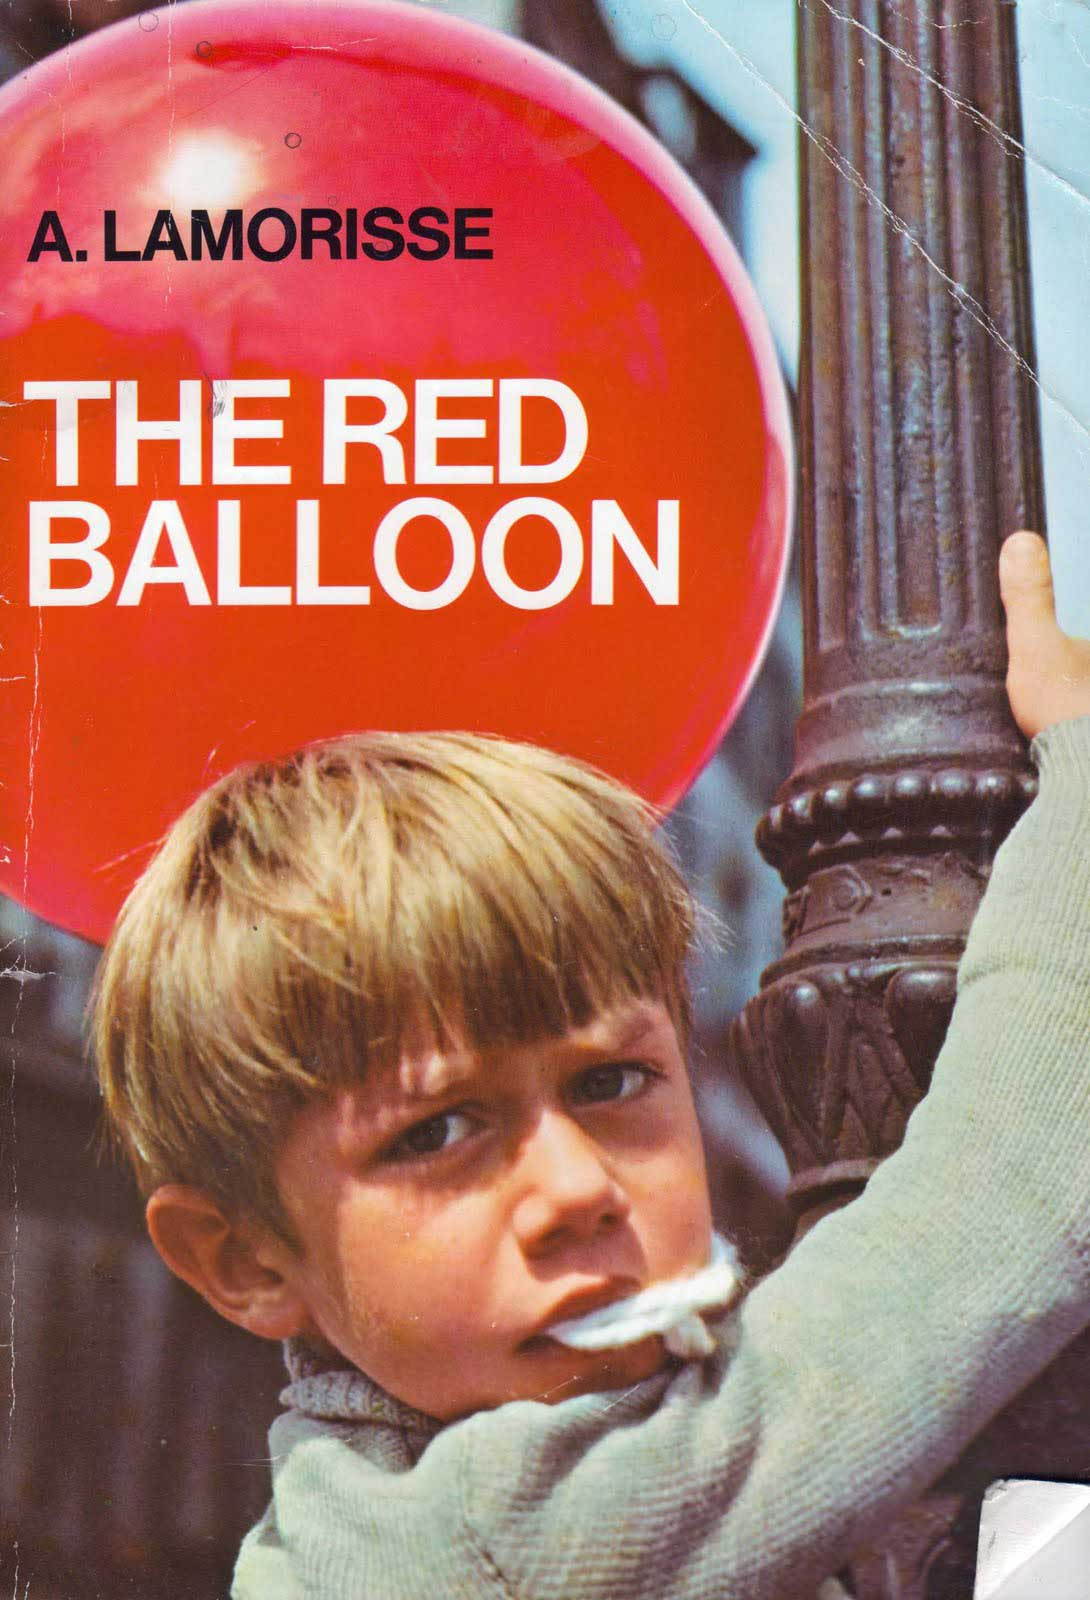 The Red Balloon, by Albert Lamorisse.                                                                                                                            Vivid photographs help tell this story about a boy in Paris and his best friend, a red balloon.                                                                                                                            Buy now: The Red Balloon